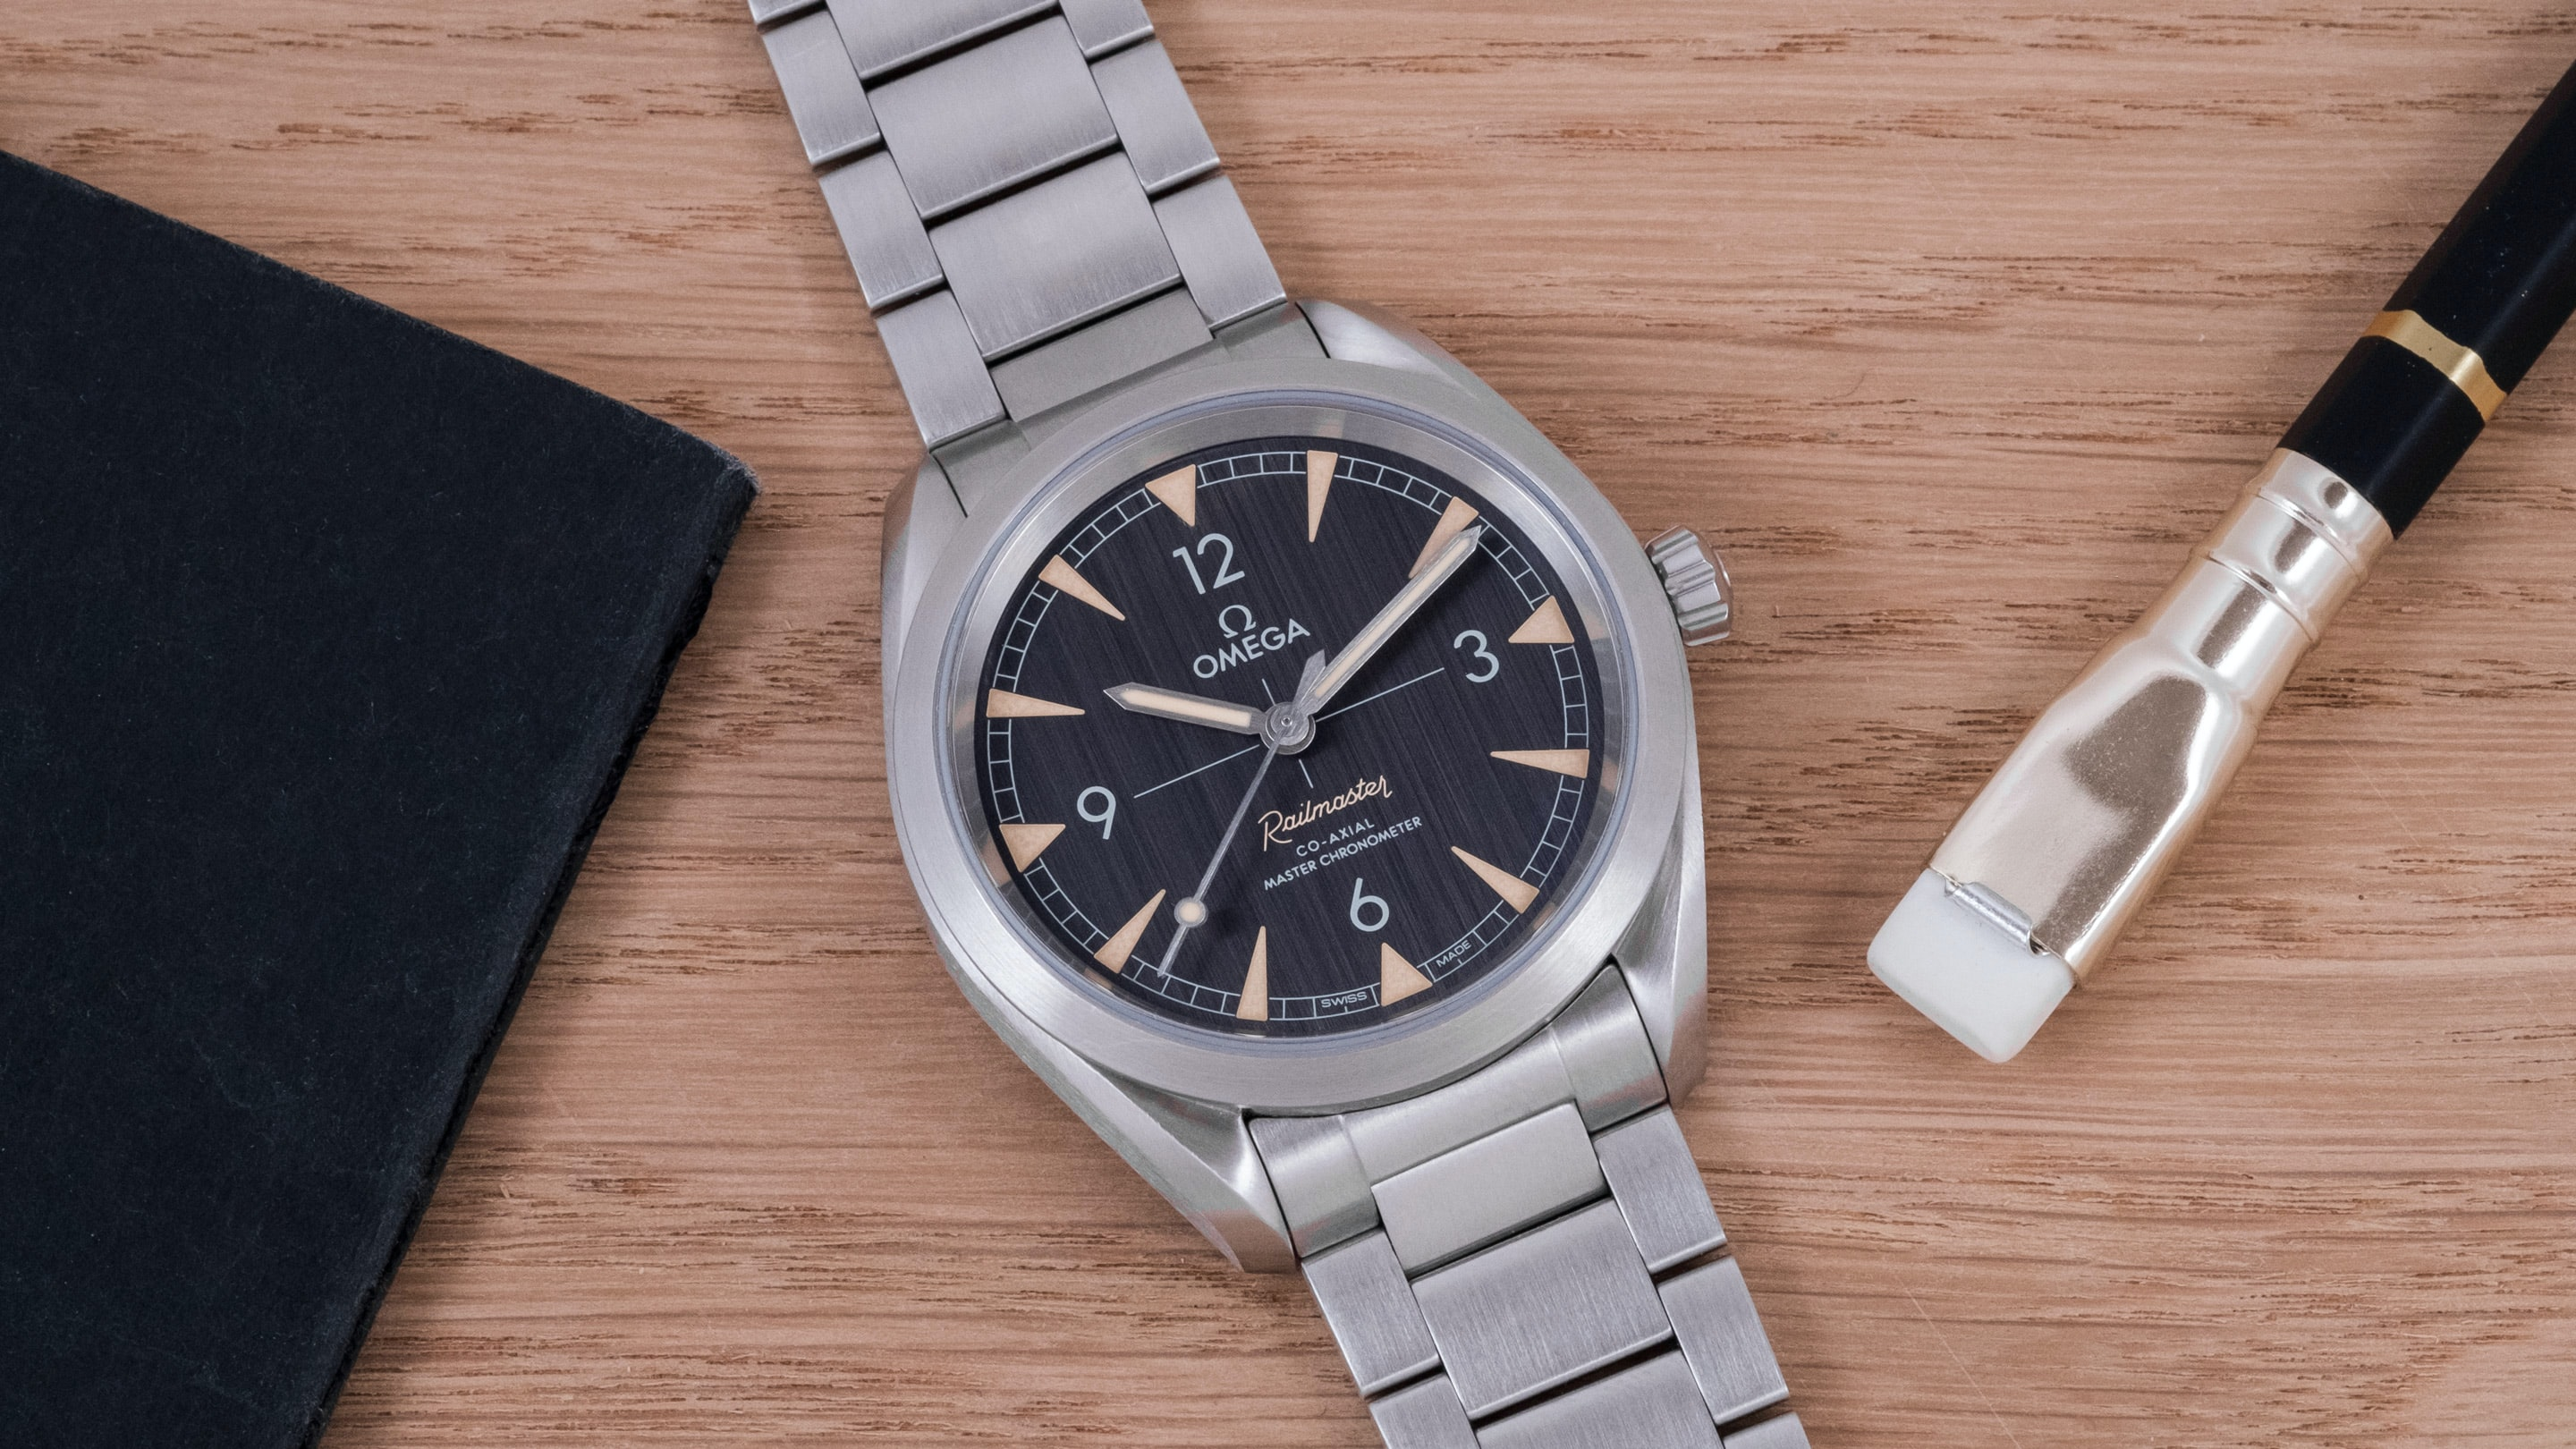 Hero 2.jpg?ixlib=rails 1.1 A Week On The Wrist: The Omega Seamaster Railmaster A Week On The Wrist: The Omega Seamaster Railmaster Hero 2